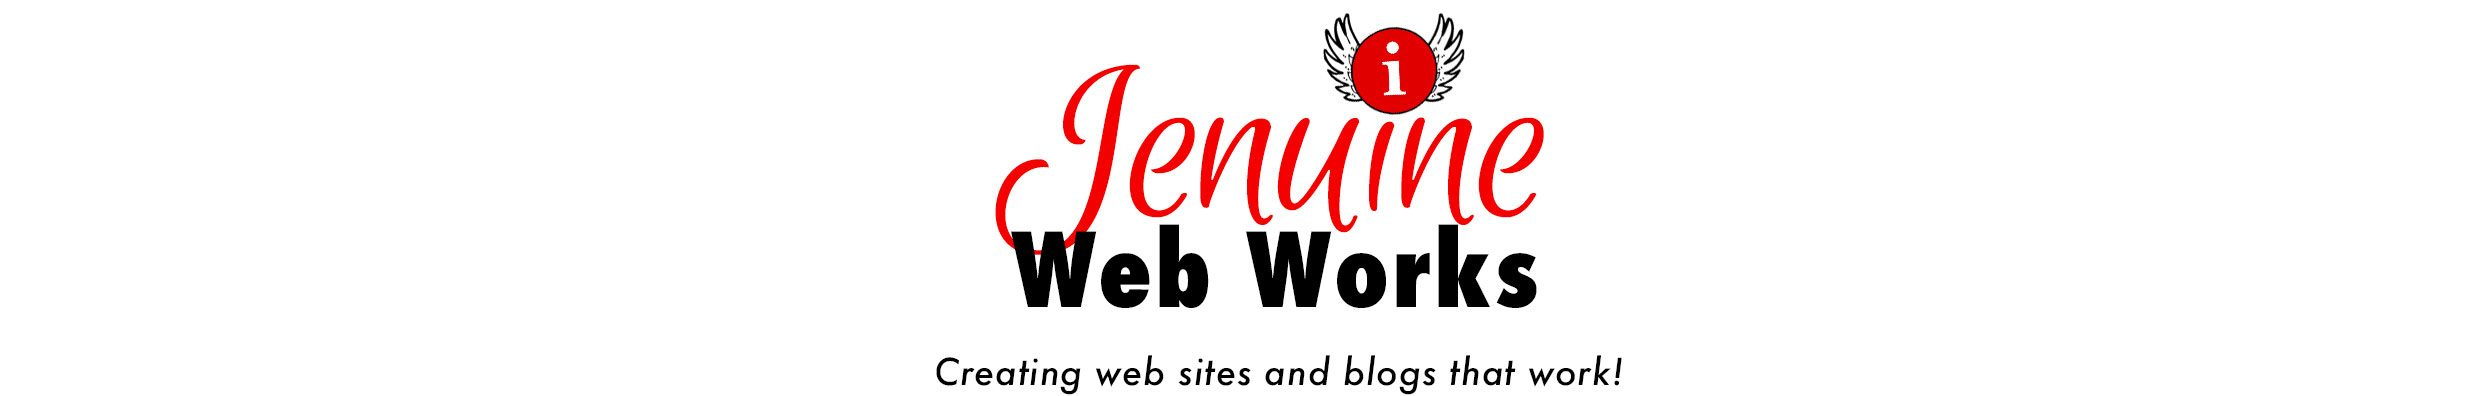 Jenuine Web Works